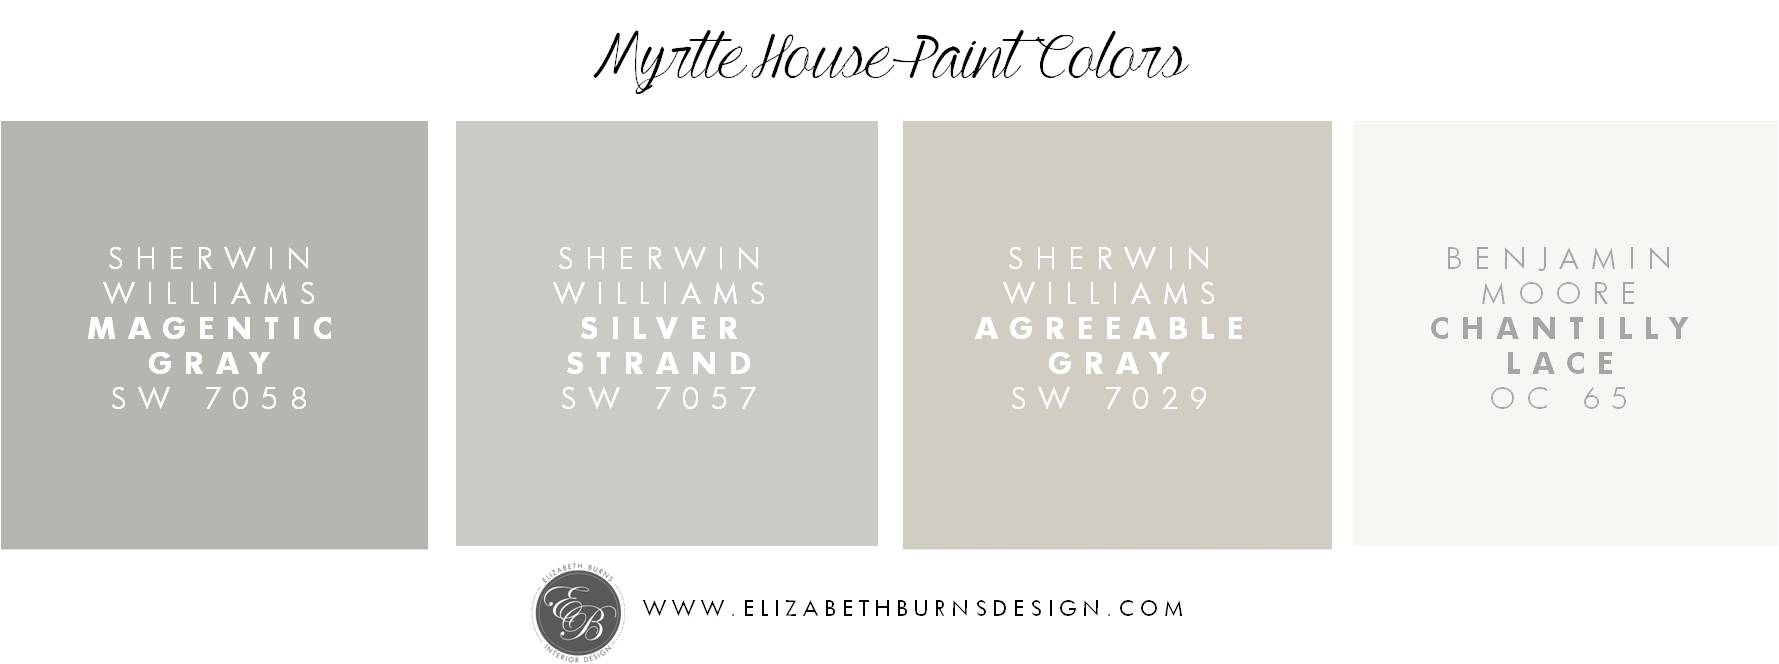 Elizabeth Burns Design | Myrtle House Paint Colors - Sherwin Williams Magnetic Gray SW 7058, Sheriwn Williams Silver Strand SW 7057, Sherwin Williams Agreeable Gray SW 7029, Benajmin Moore Chantilly Lace OC 65